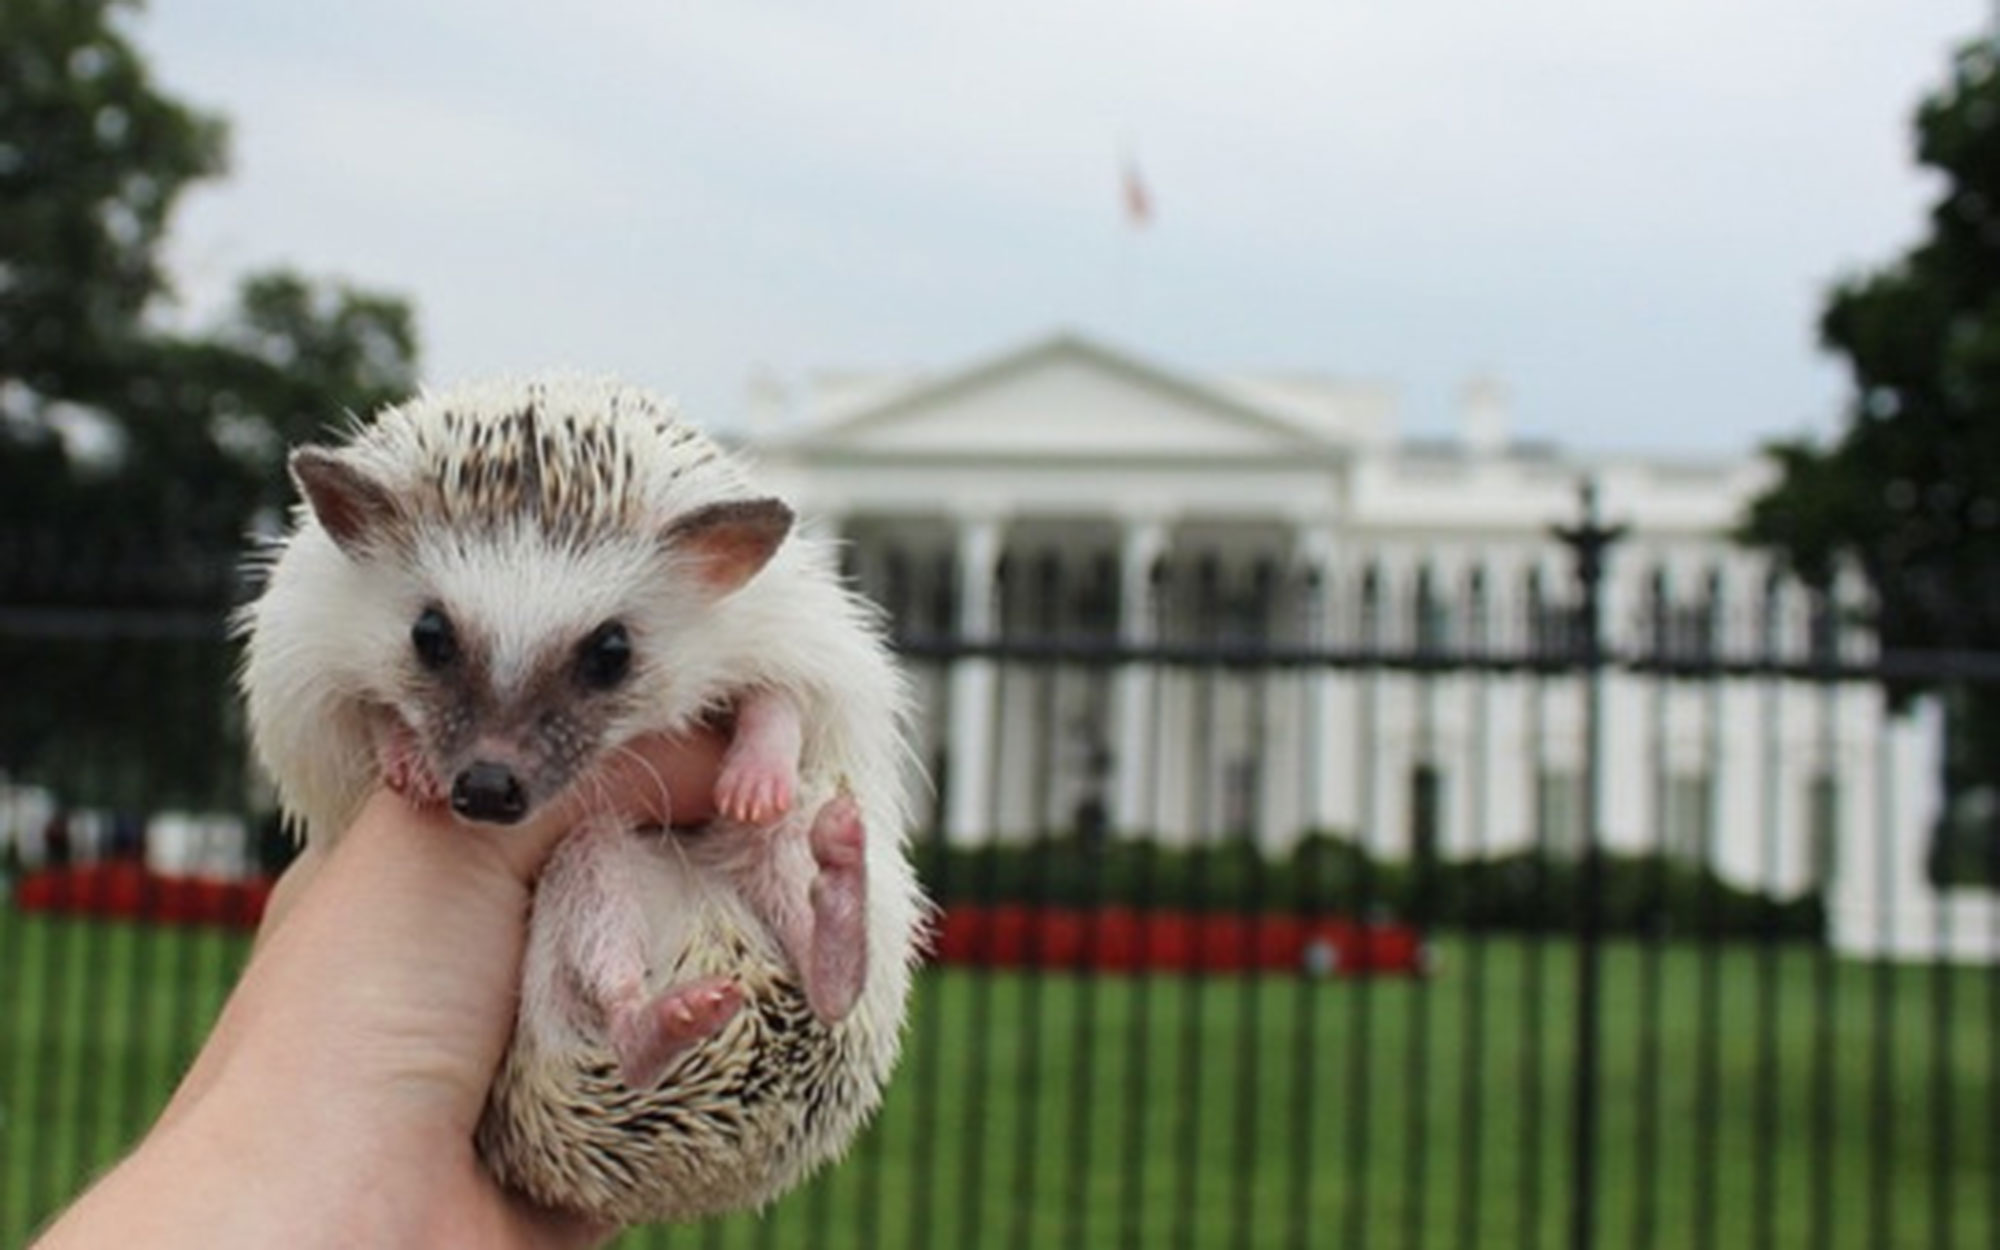 Meet Calico the Traveling Hedgehog